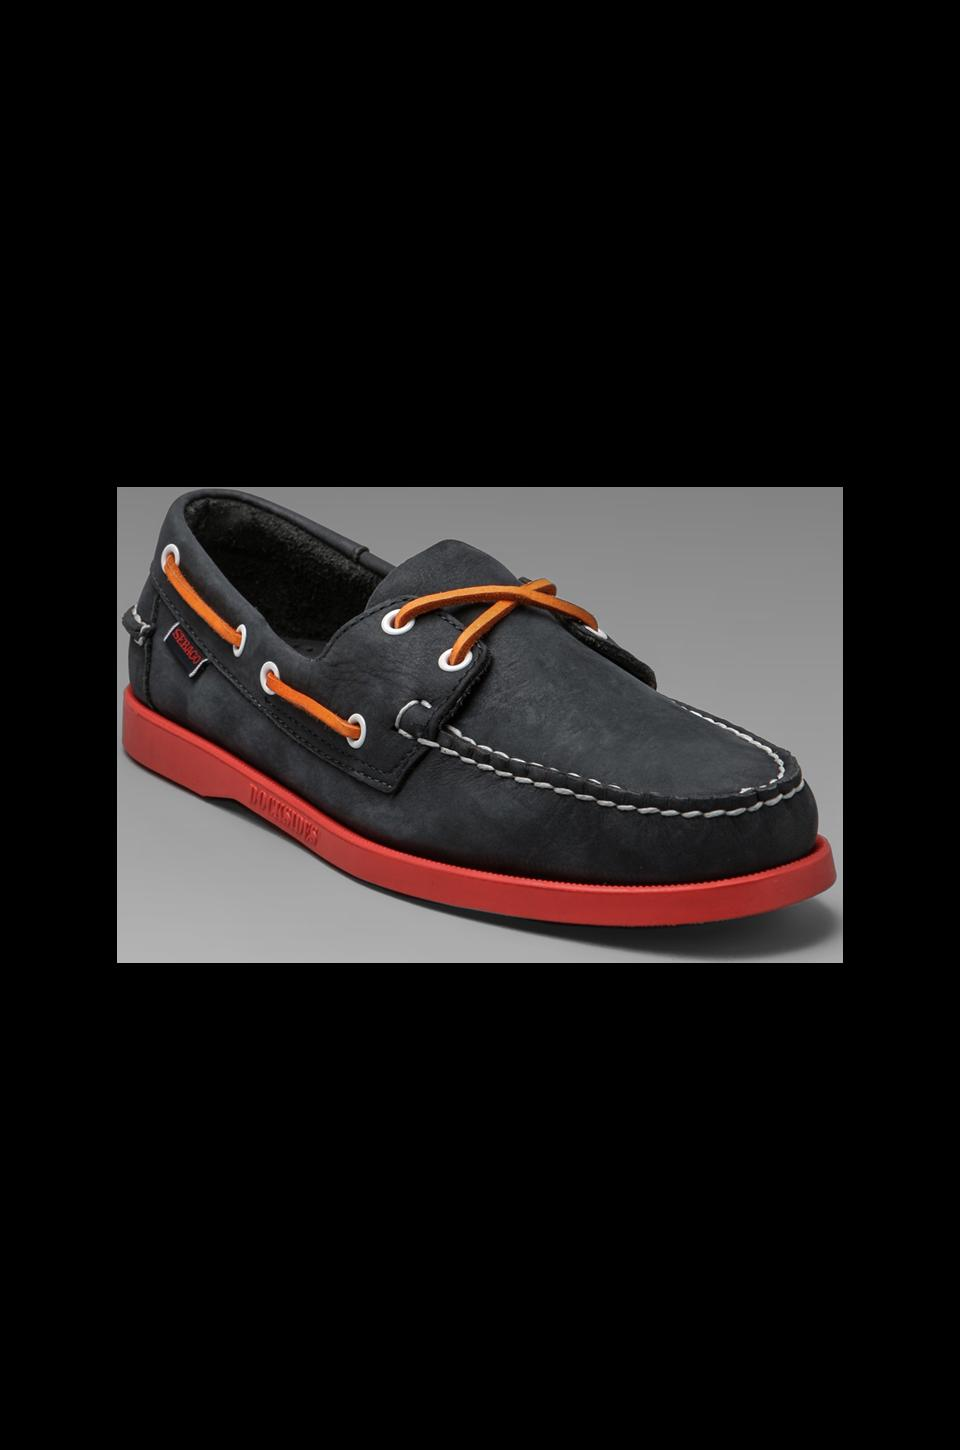 Sebago Docksides in Navy/Red Outsole